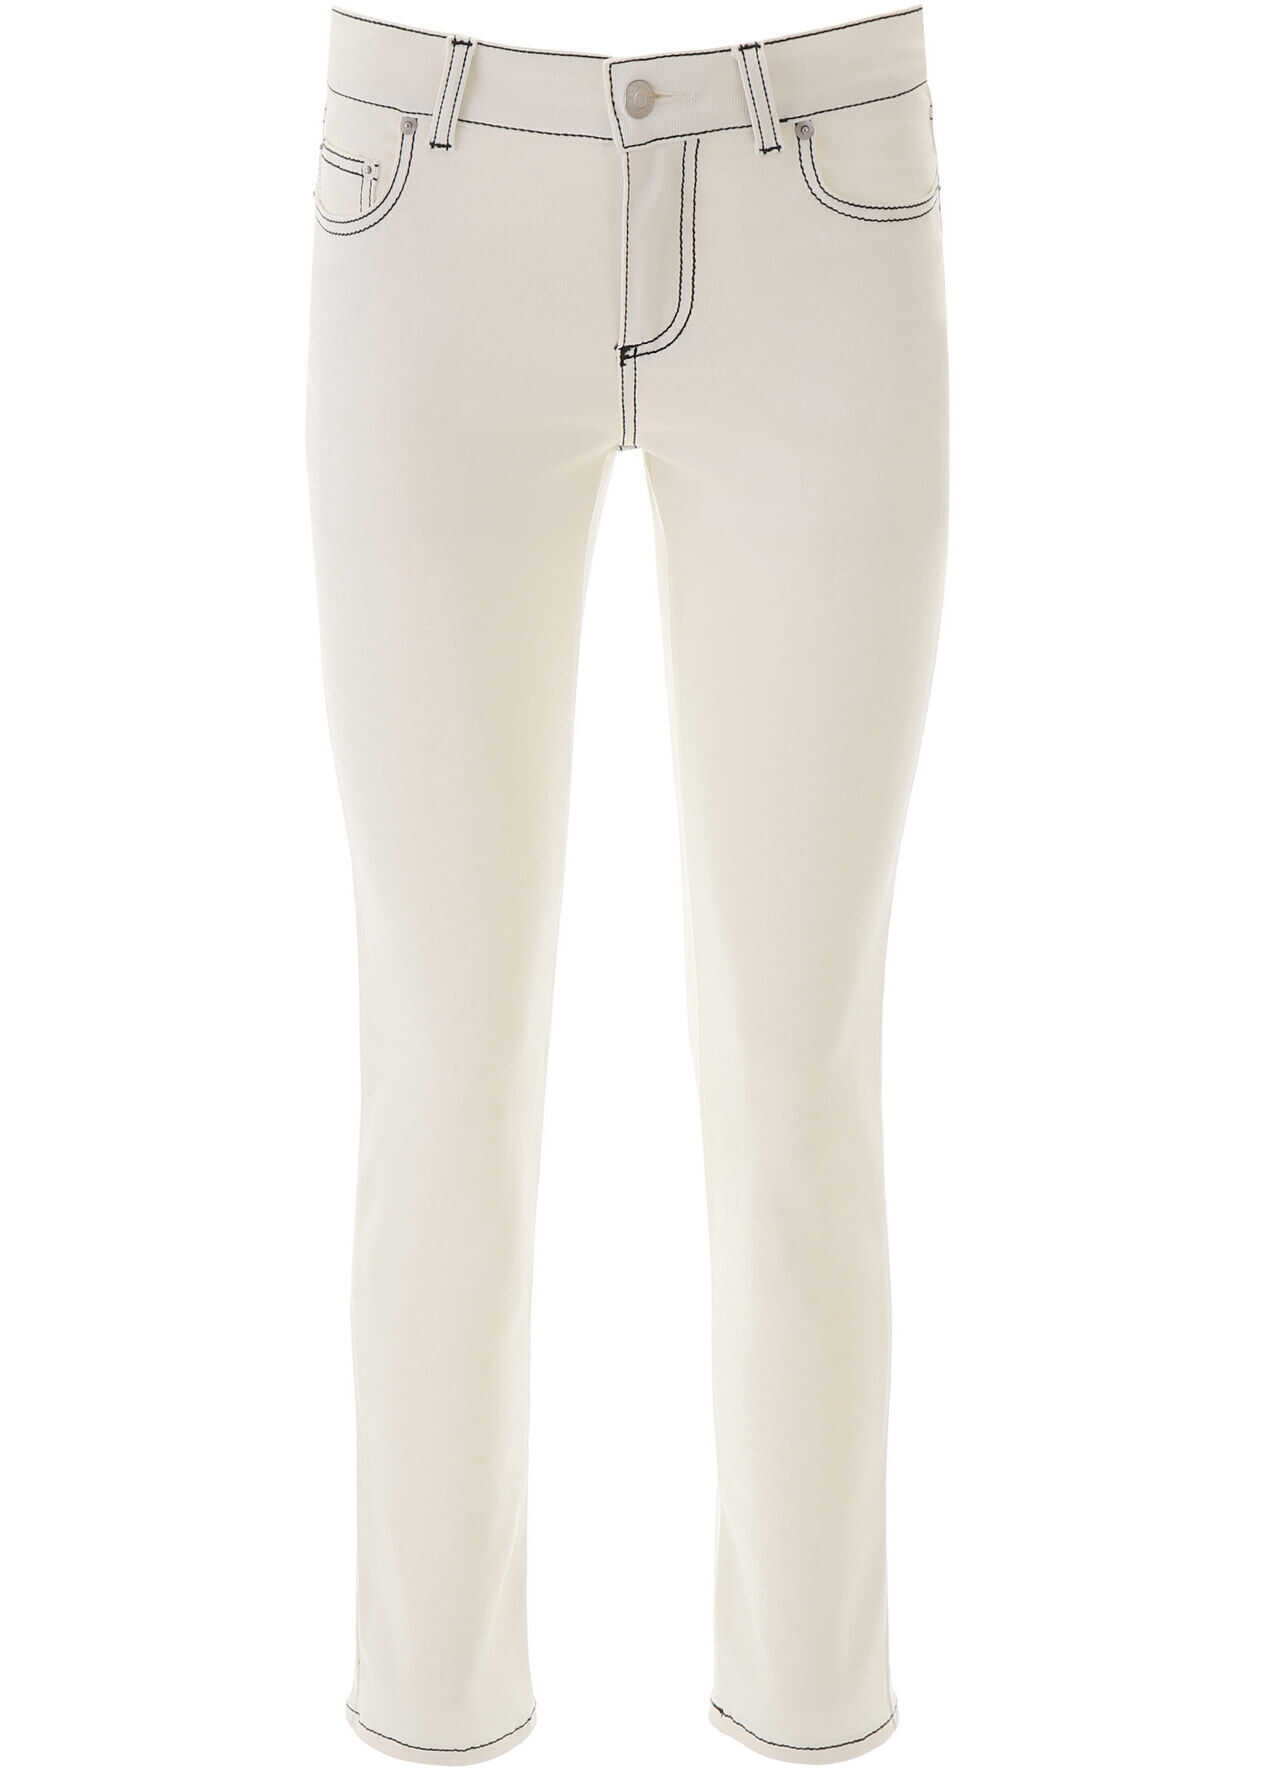 Alexander McQueen Jeans With Contrast Seams CHALK